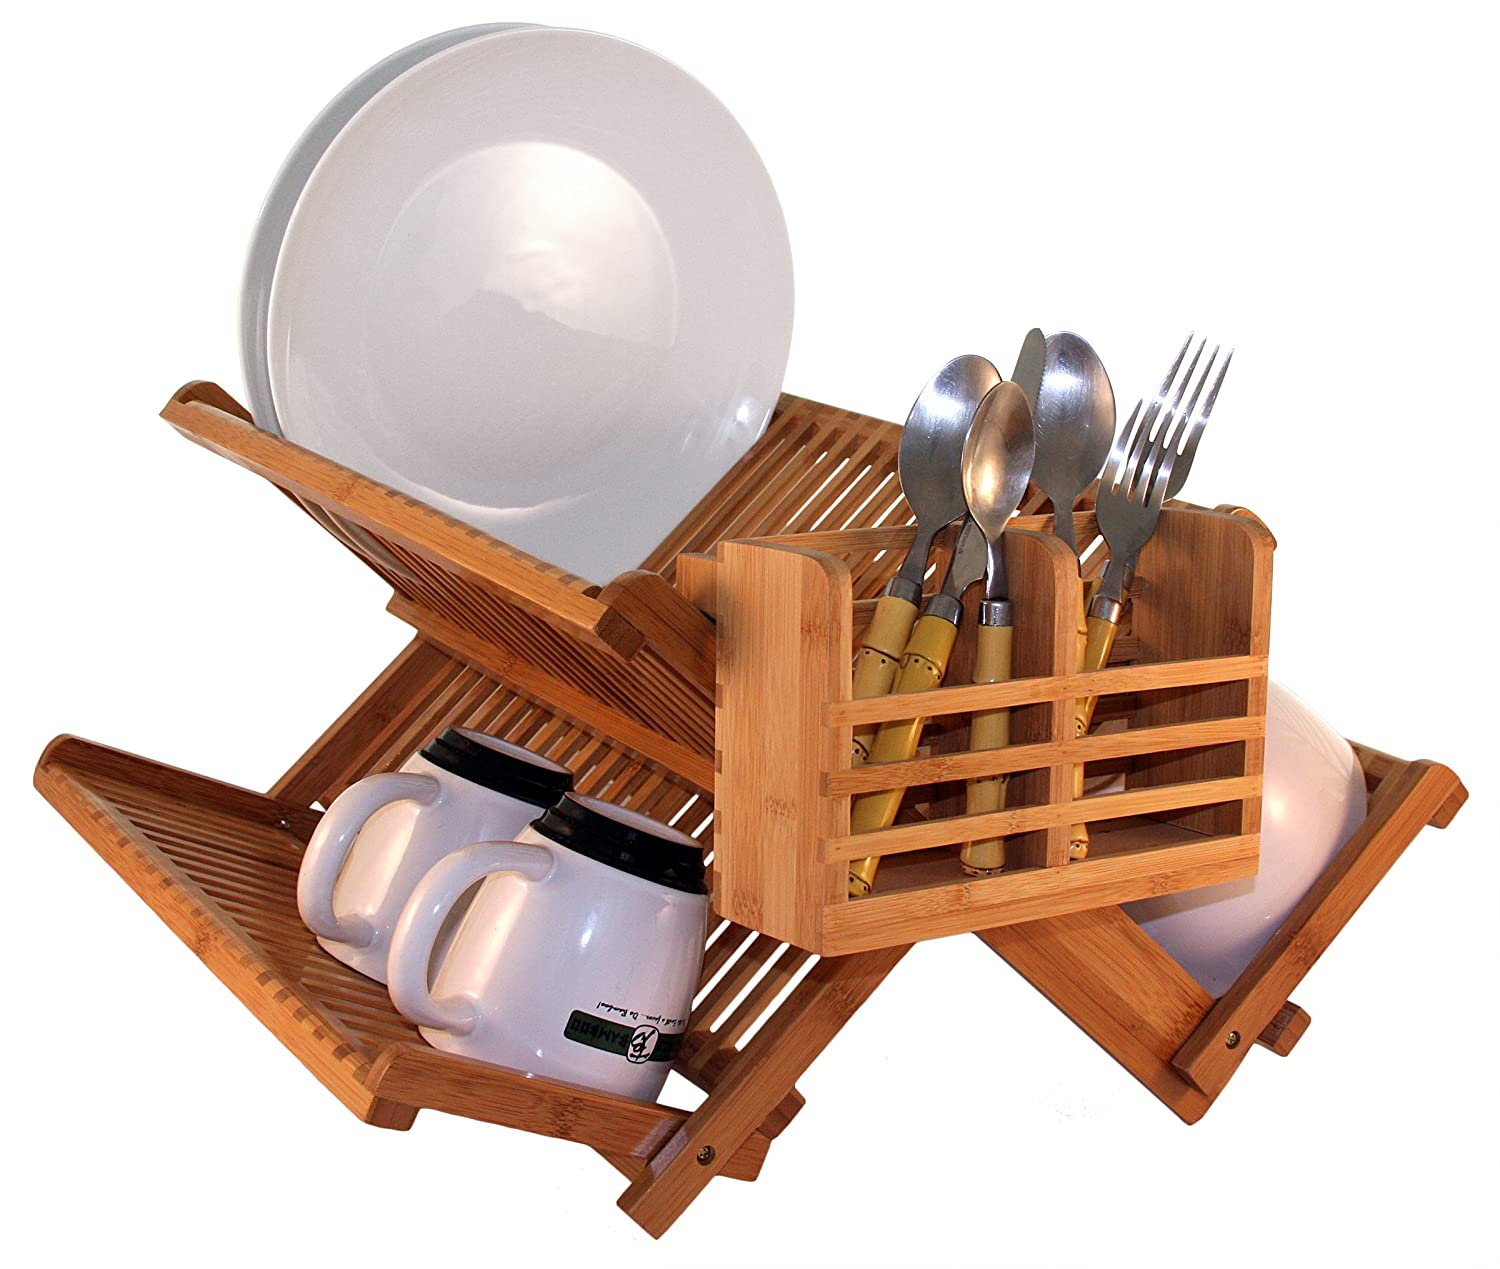 Amazon.com: Totally Bamboo Premium Collapsible Dish Drying Rack ...